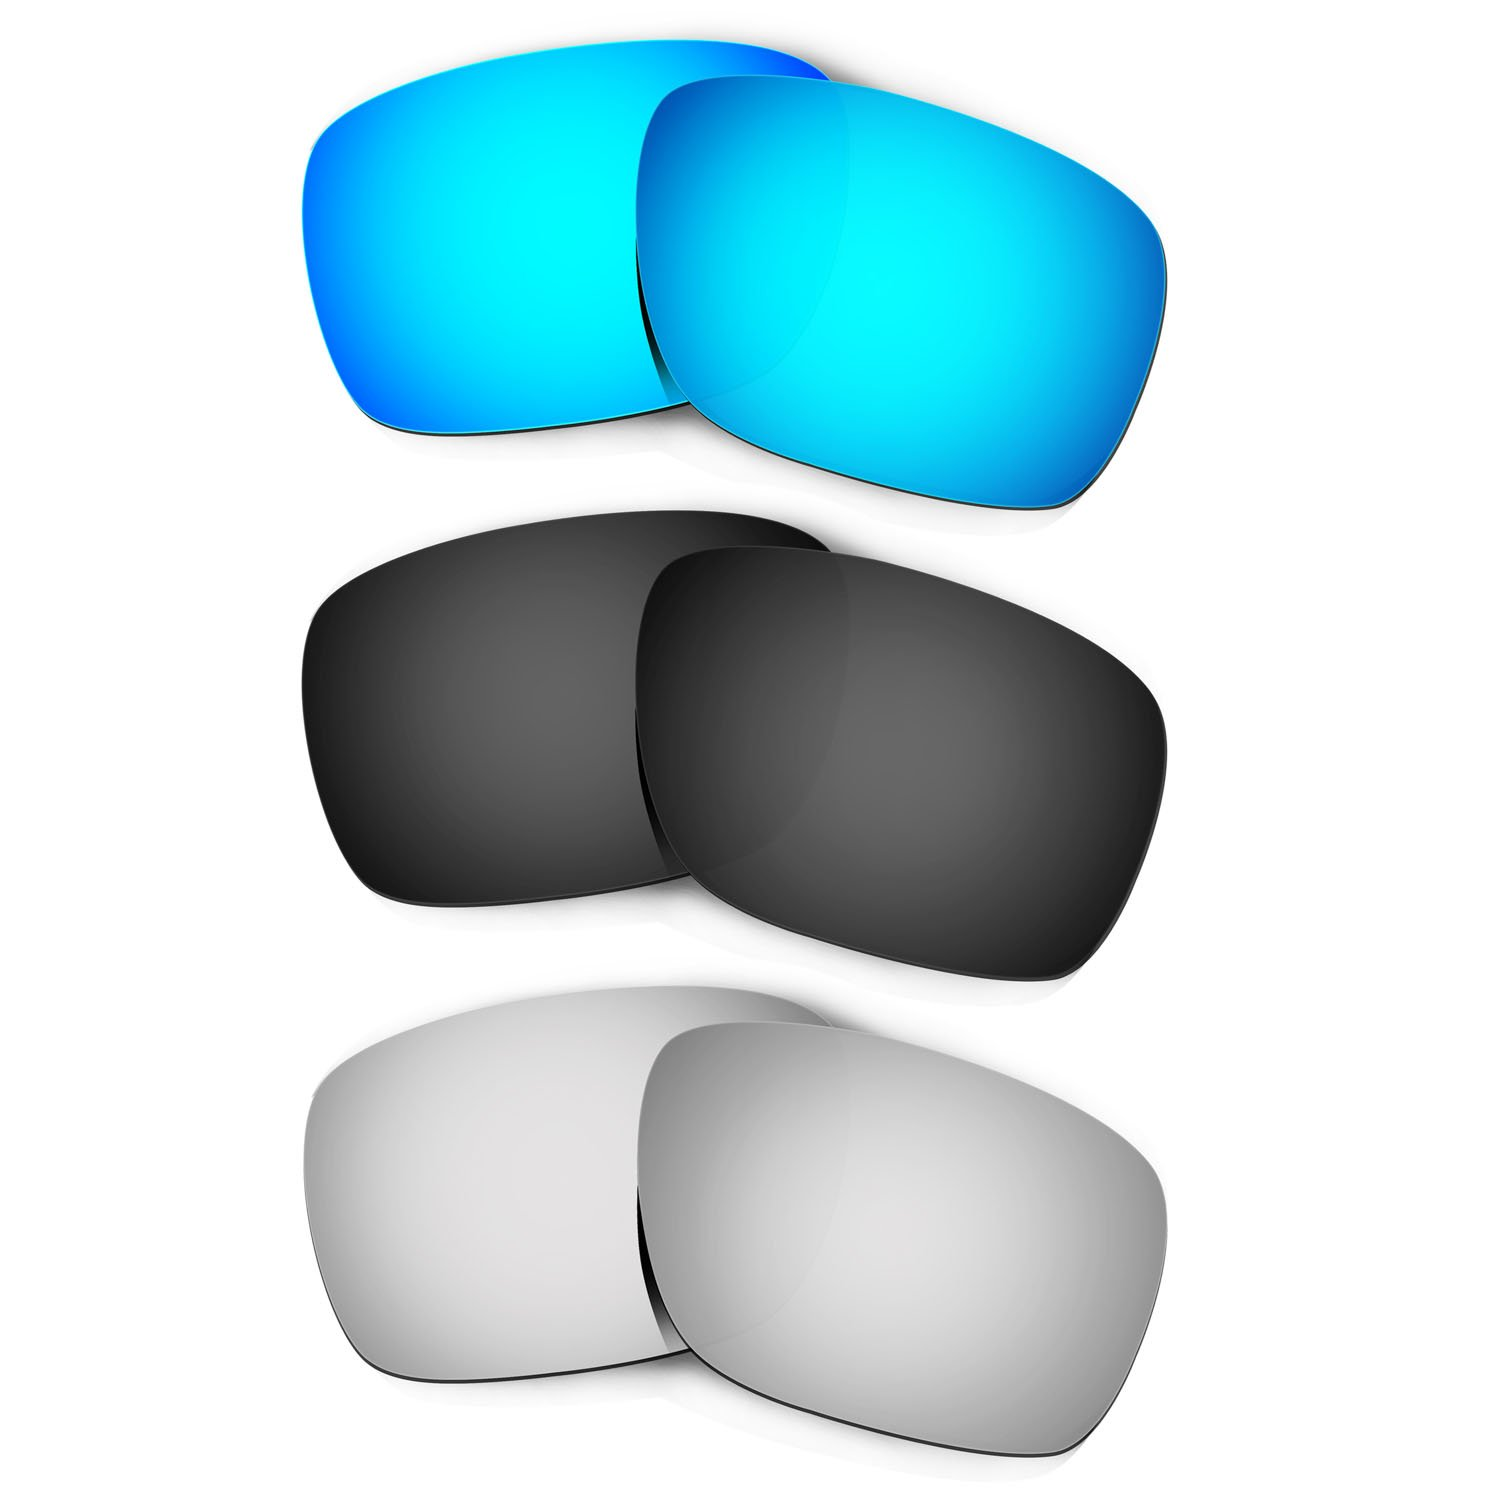 Hkuco Plus Replacement Lenses For Oakley Turbine - 3 pair Combo Pack